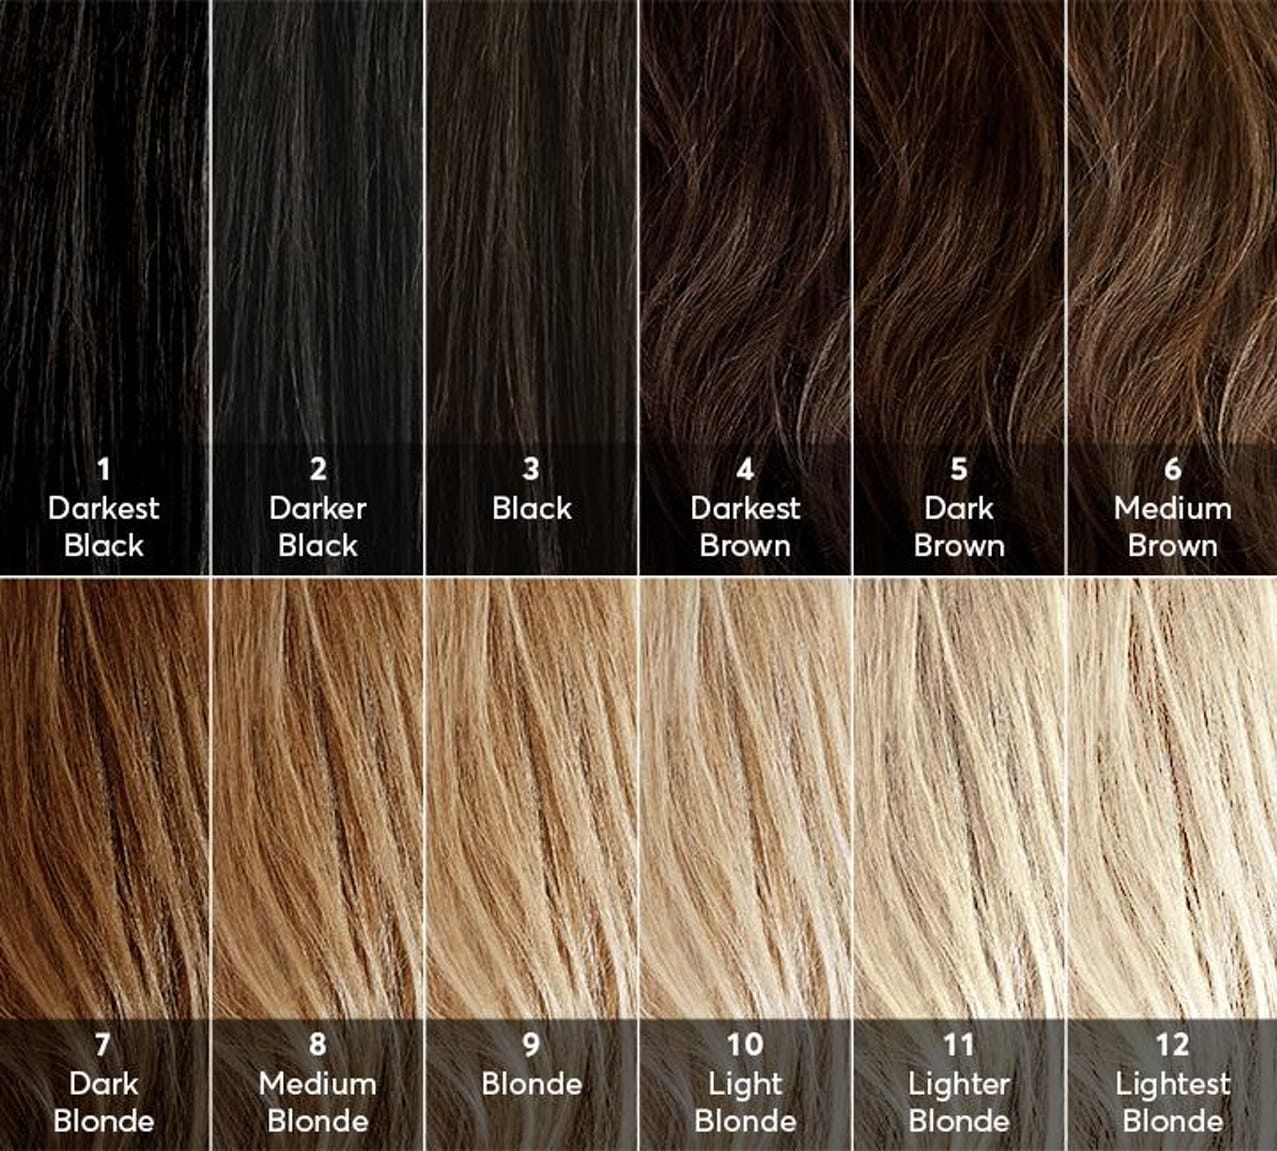 What Level Is My Hair Find Your Hair Color Level With This Guide From Madison Reed Blonde Hair Color Chart Hair Levels Hair Color Shades